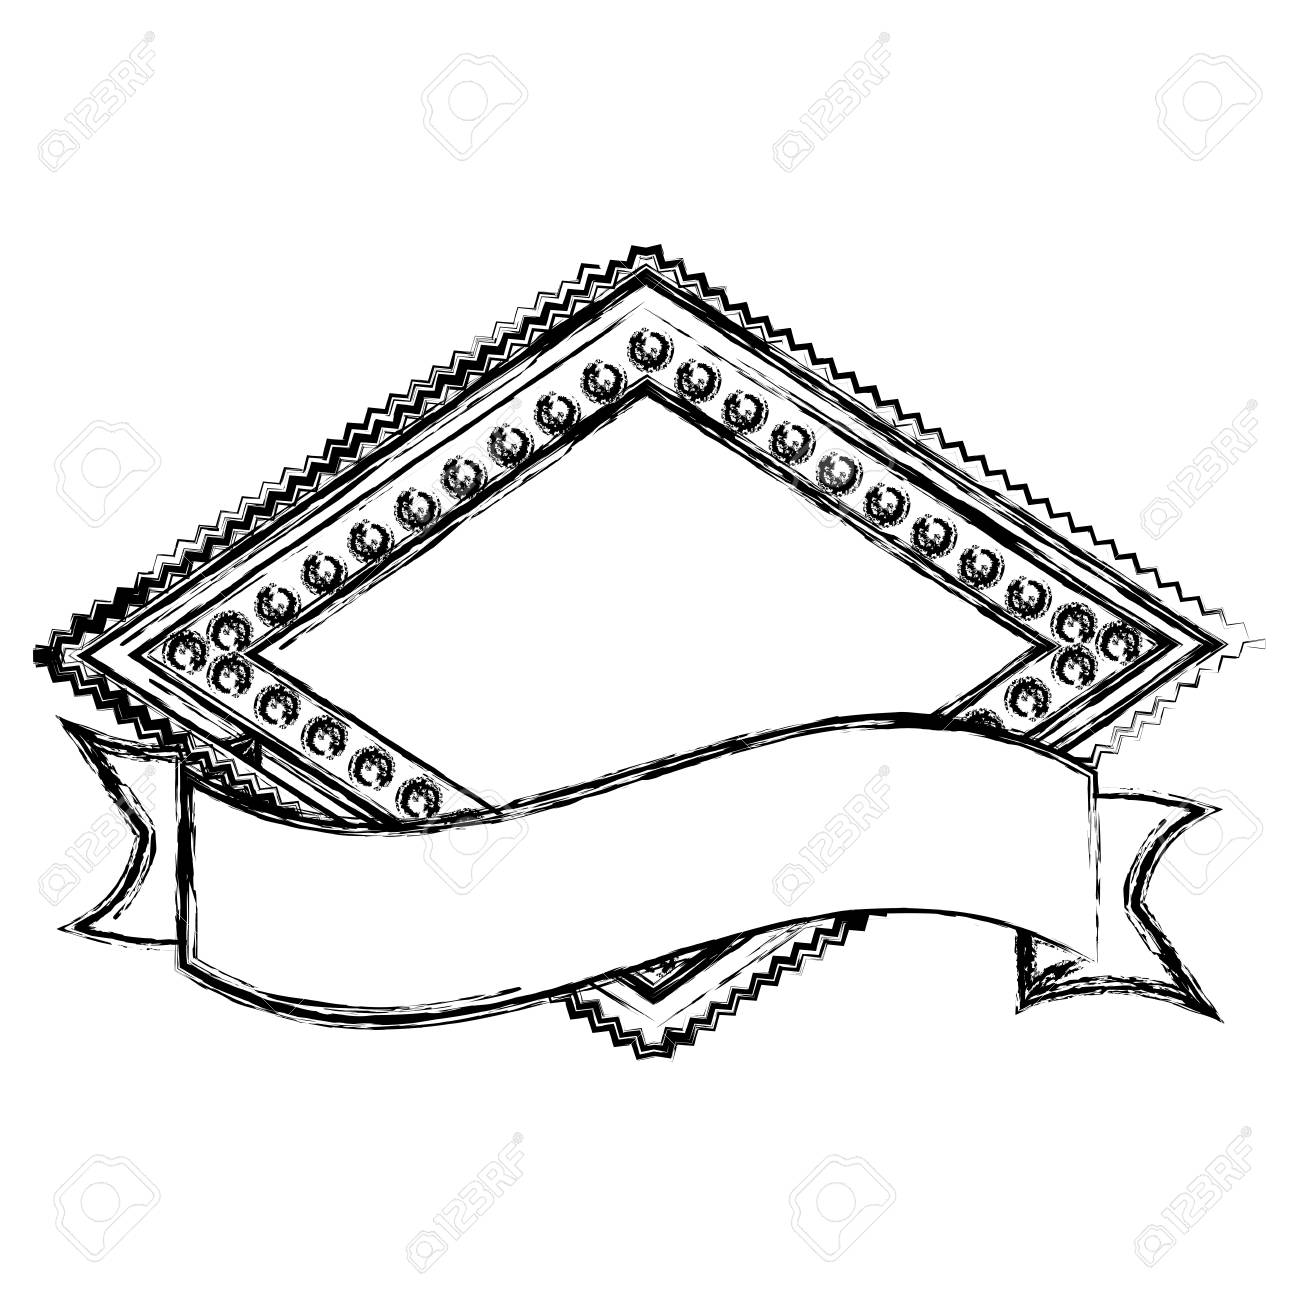 diamond shape drawing at getdrawings com free for personal use